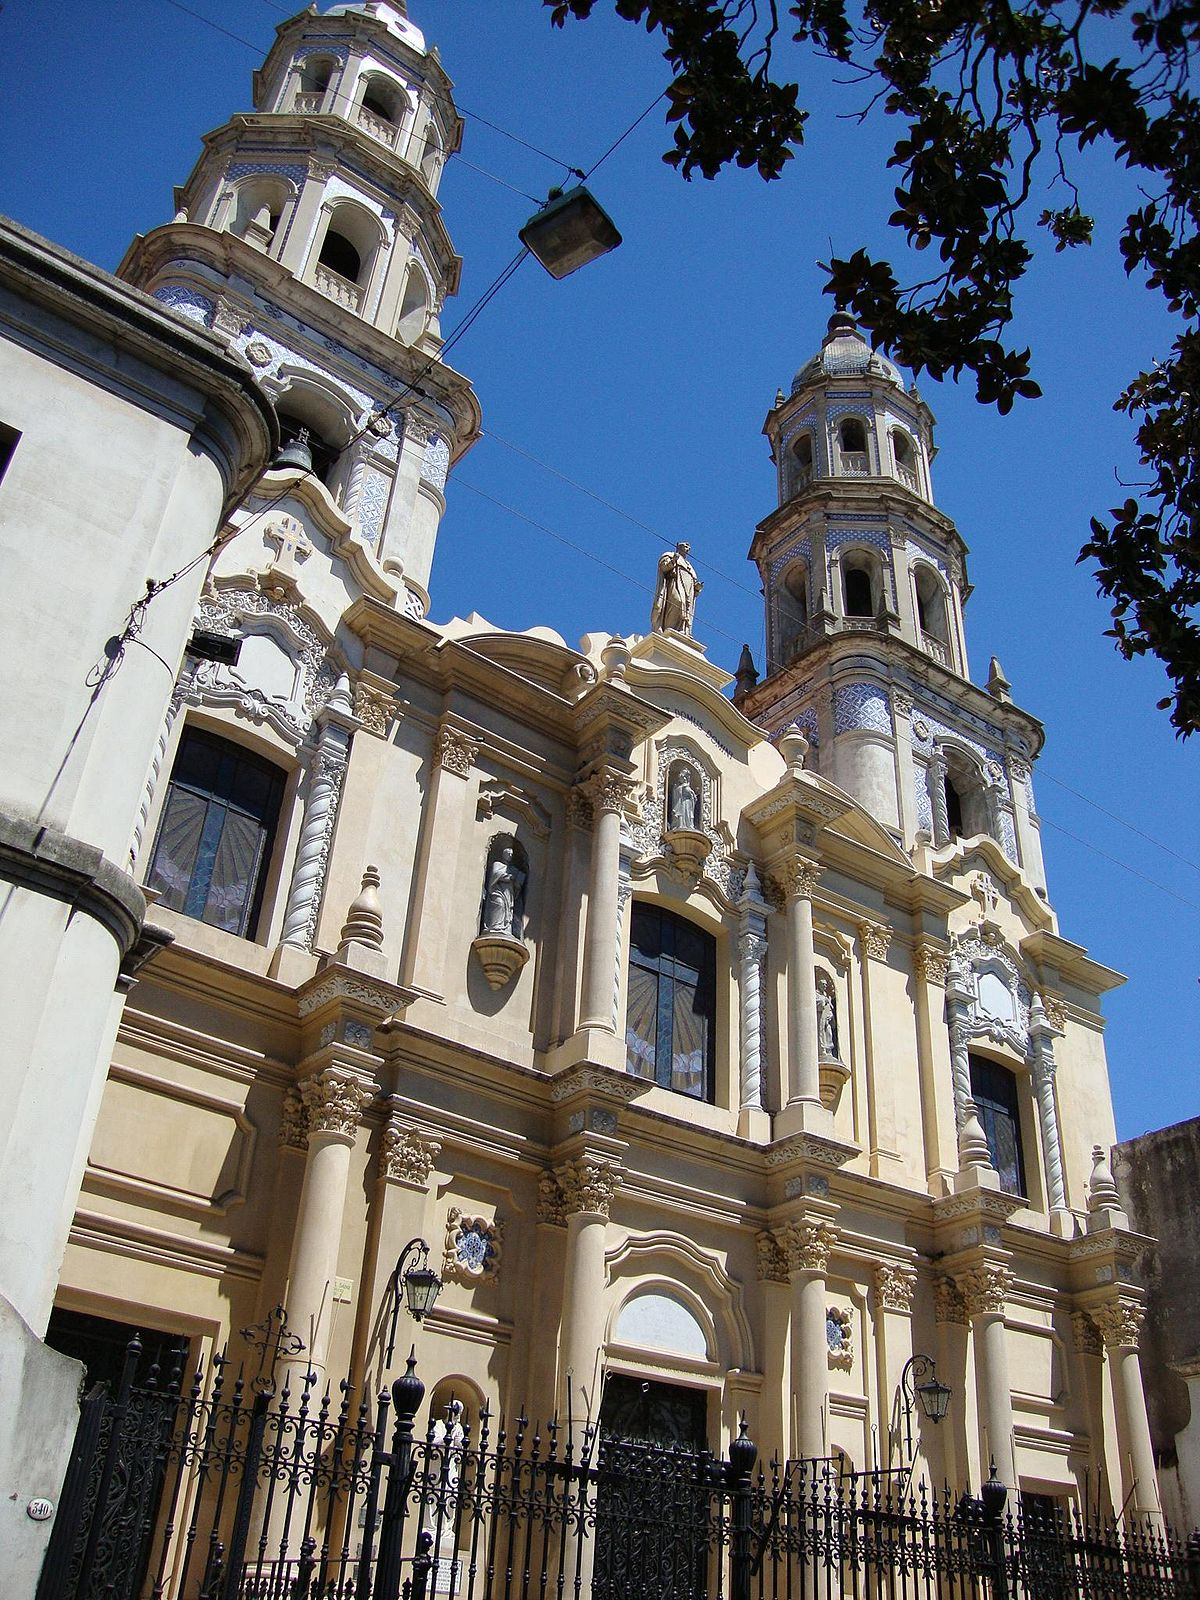 Buenos AiresSan Telmo  Travel guide at Wikivoyage